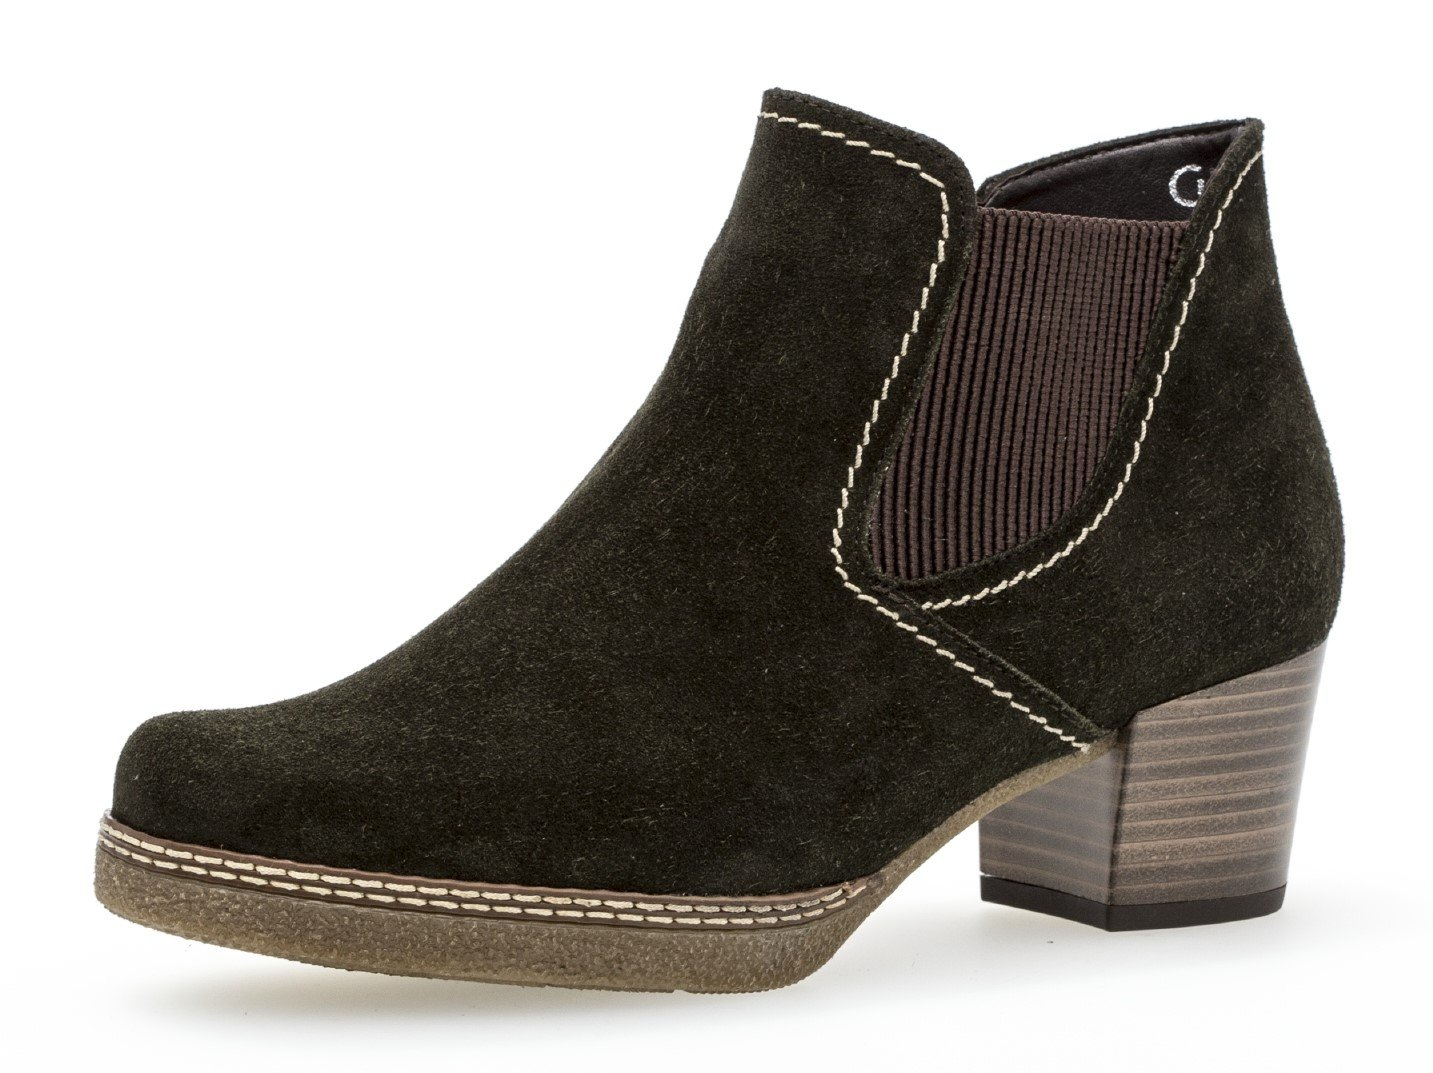 Gabor Ankle Boot Lilia Lilia 96.661 Gabor Ankle Bottle(s.n/A.ma/Mi) 840d41f - therethere.space